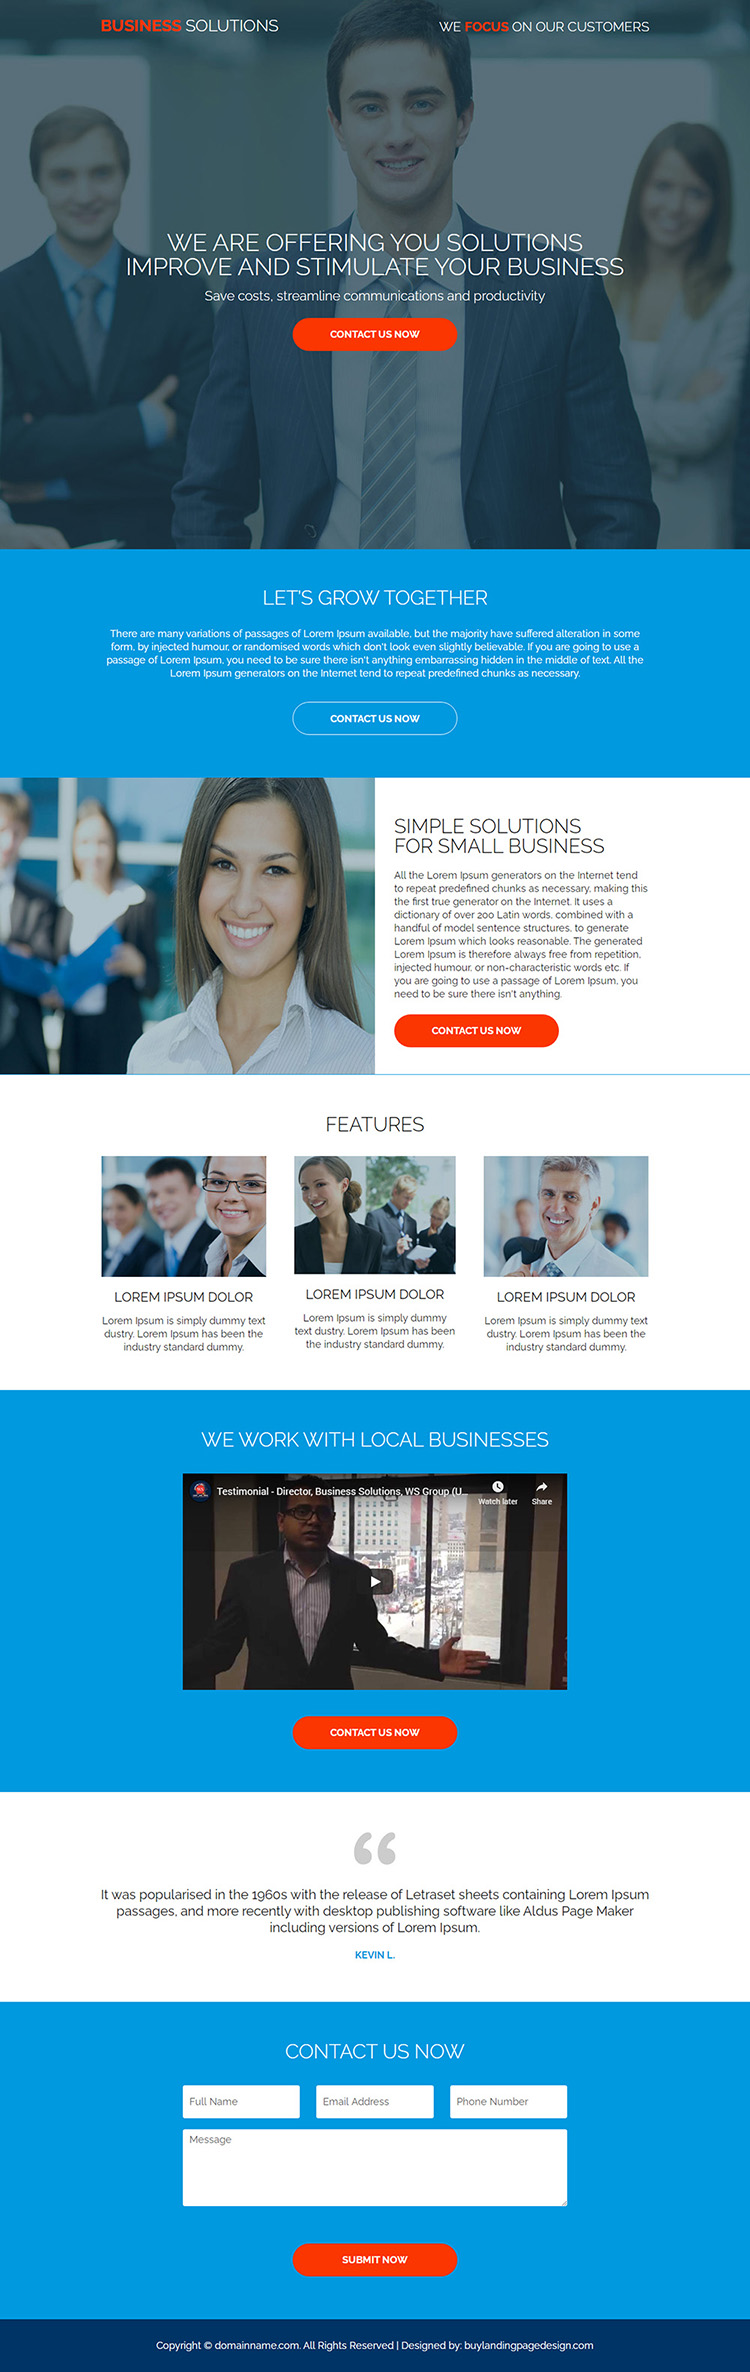 small business solutions responsive landing page designs